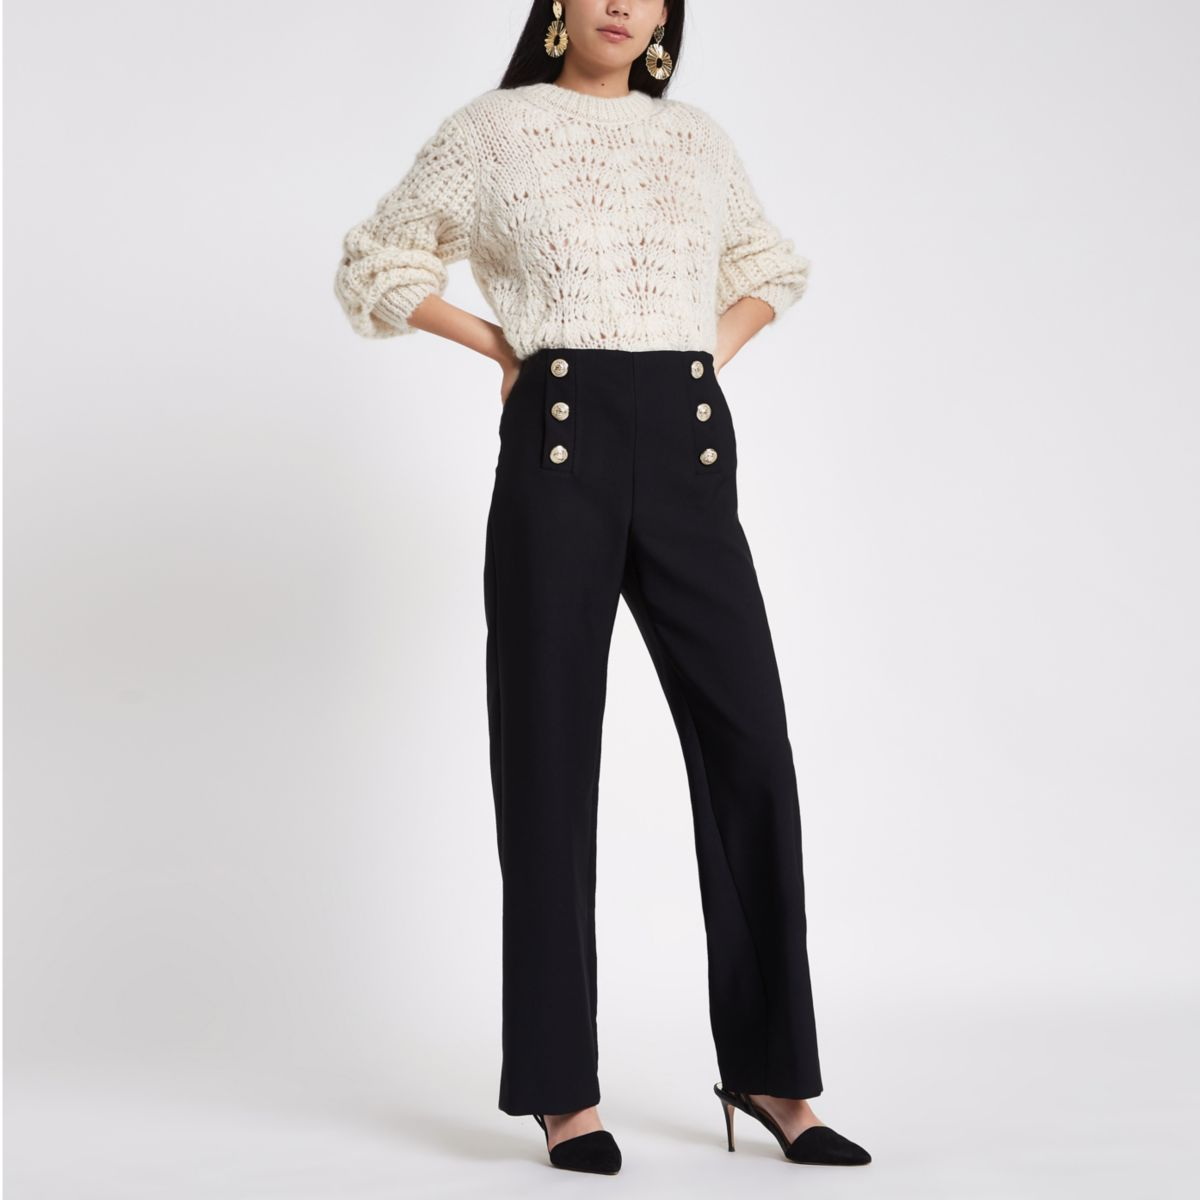 Black wide leg button detail trousers